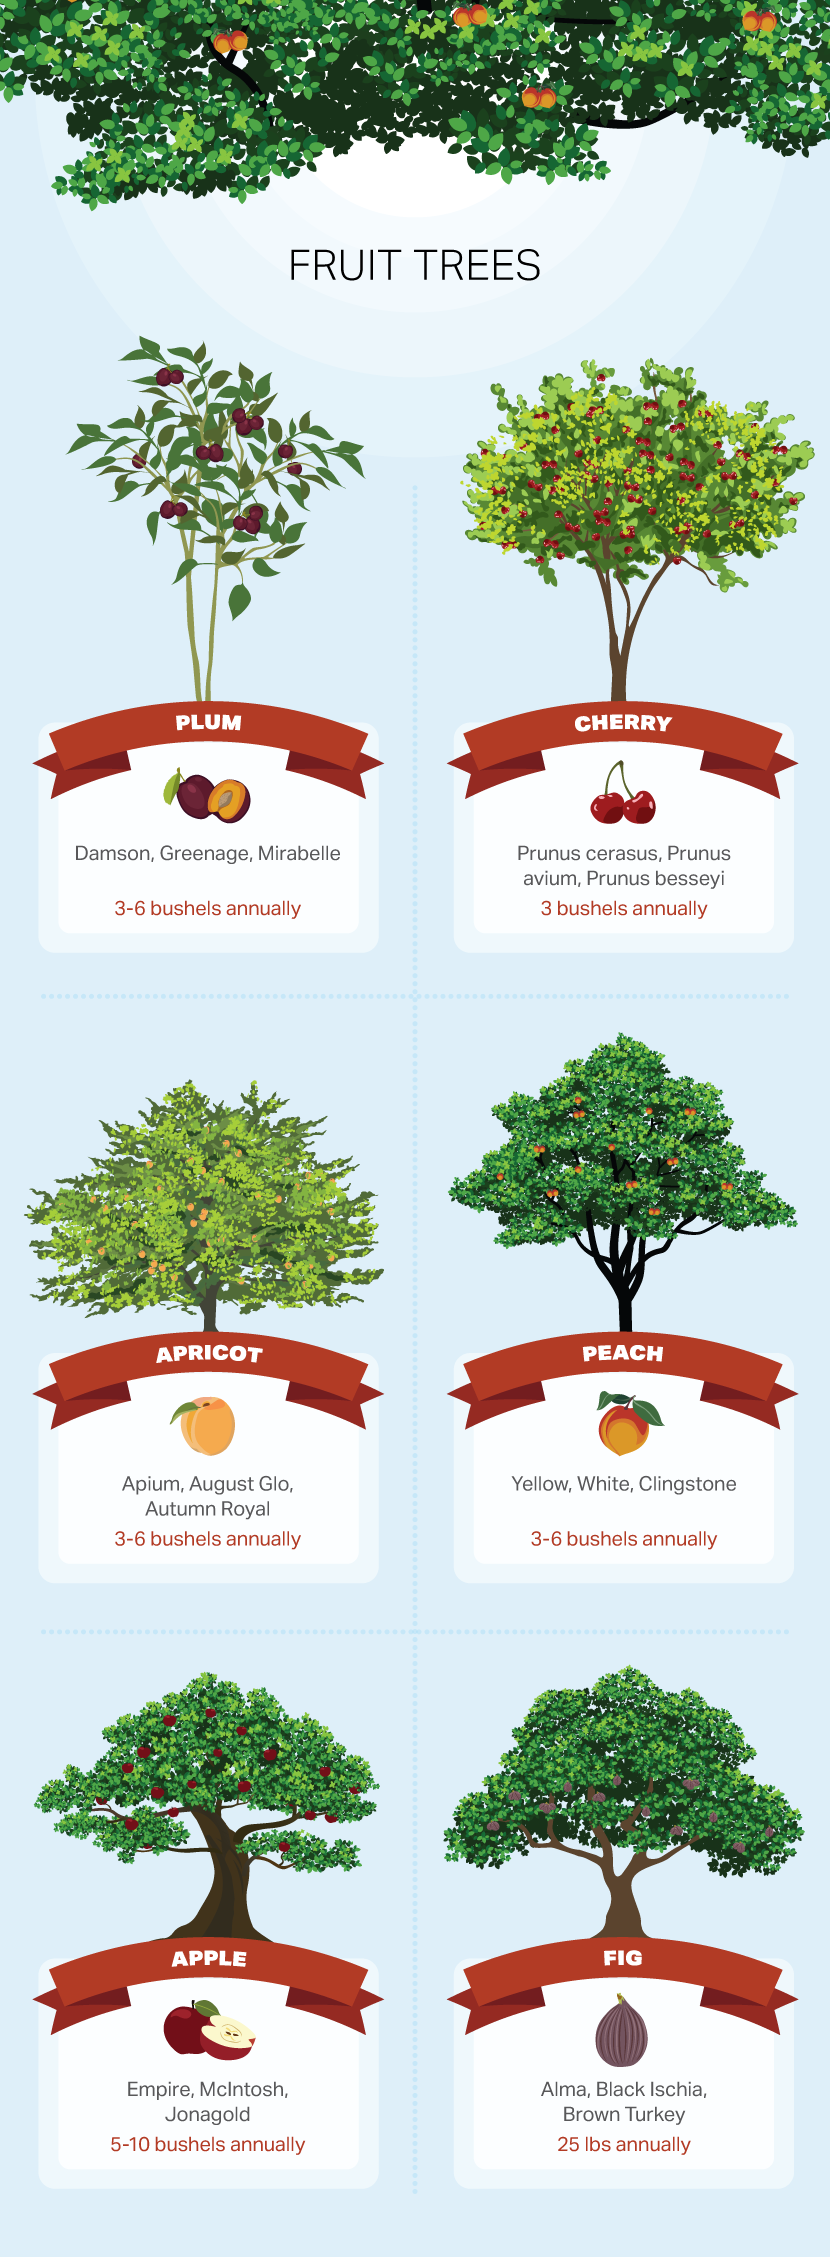 Fruit Trees - How to Choose a Tree For Your Yard or Garden